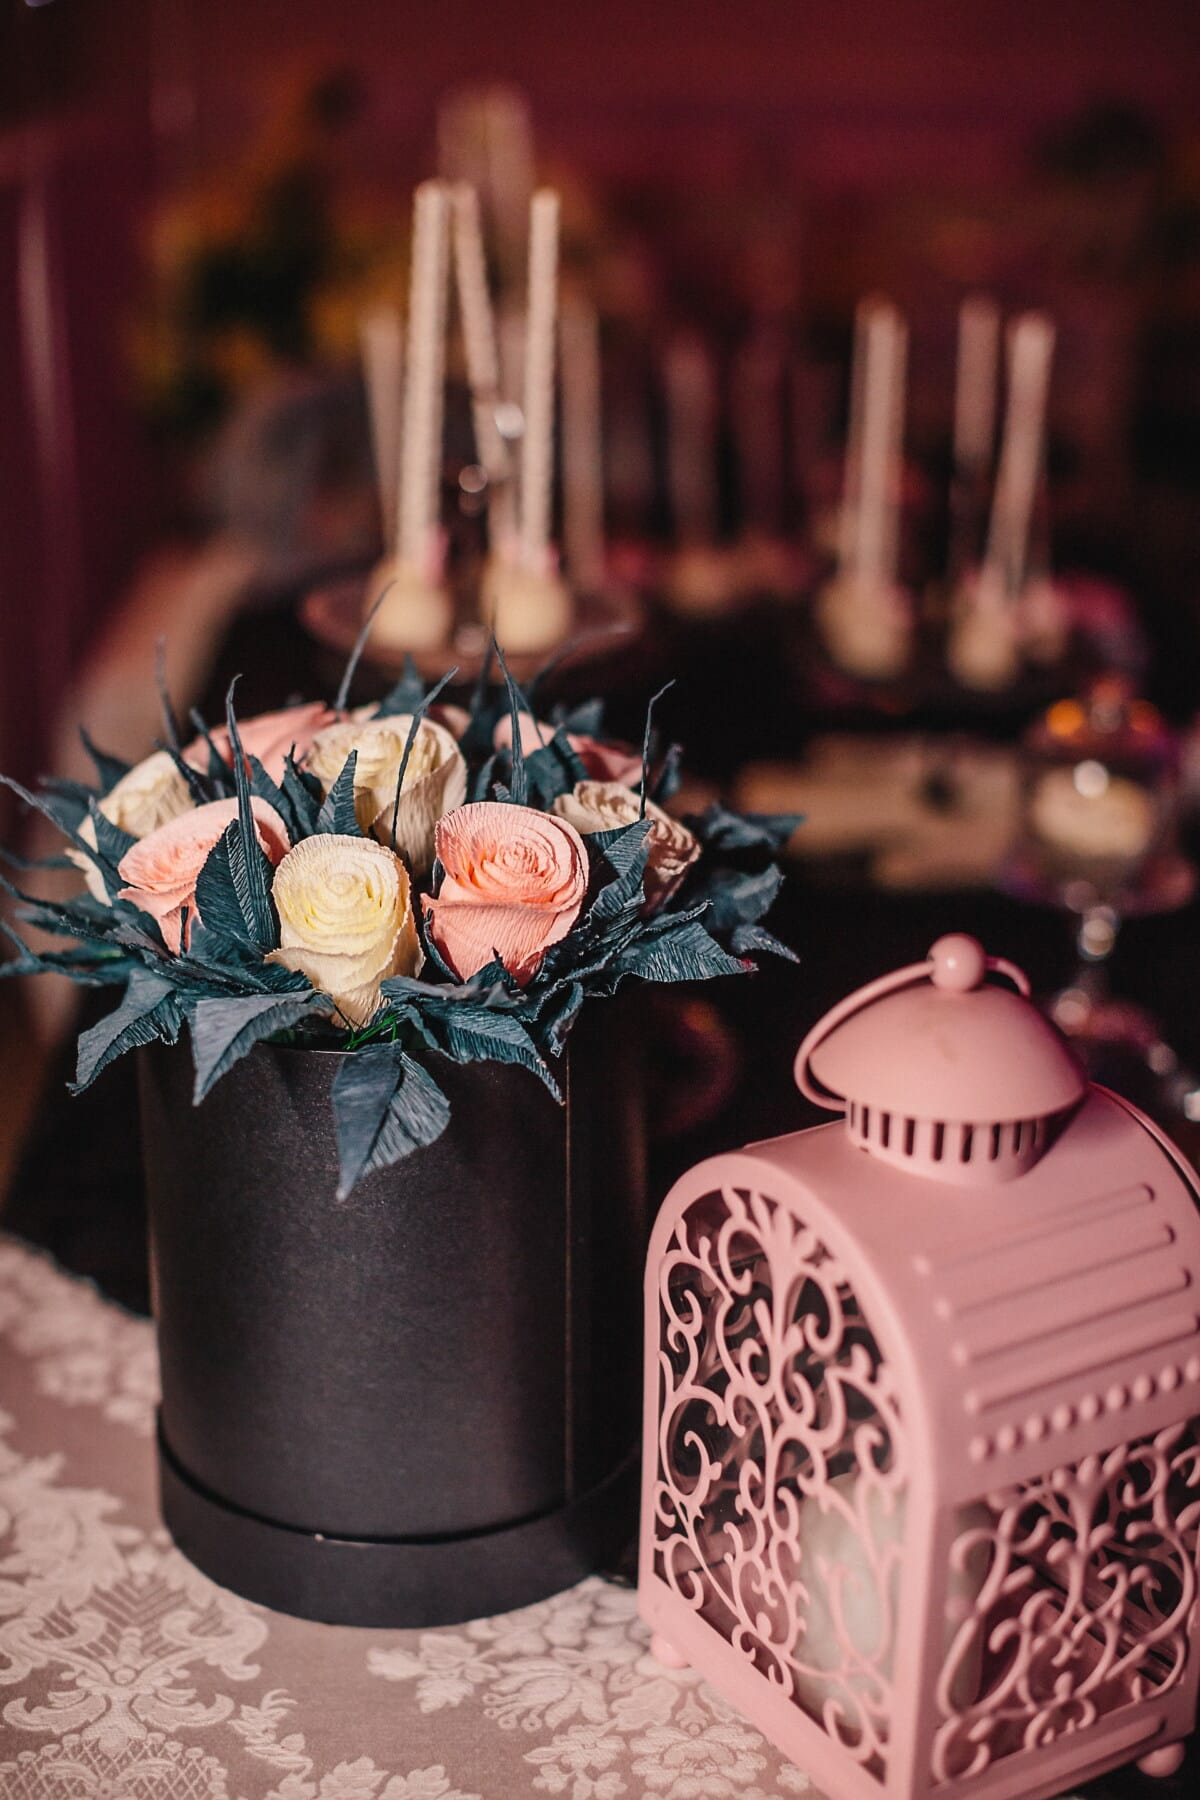 paper, roses, bouquet, still life, romantic, candlelight, interior design, wood, decoration, traditional